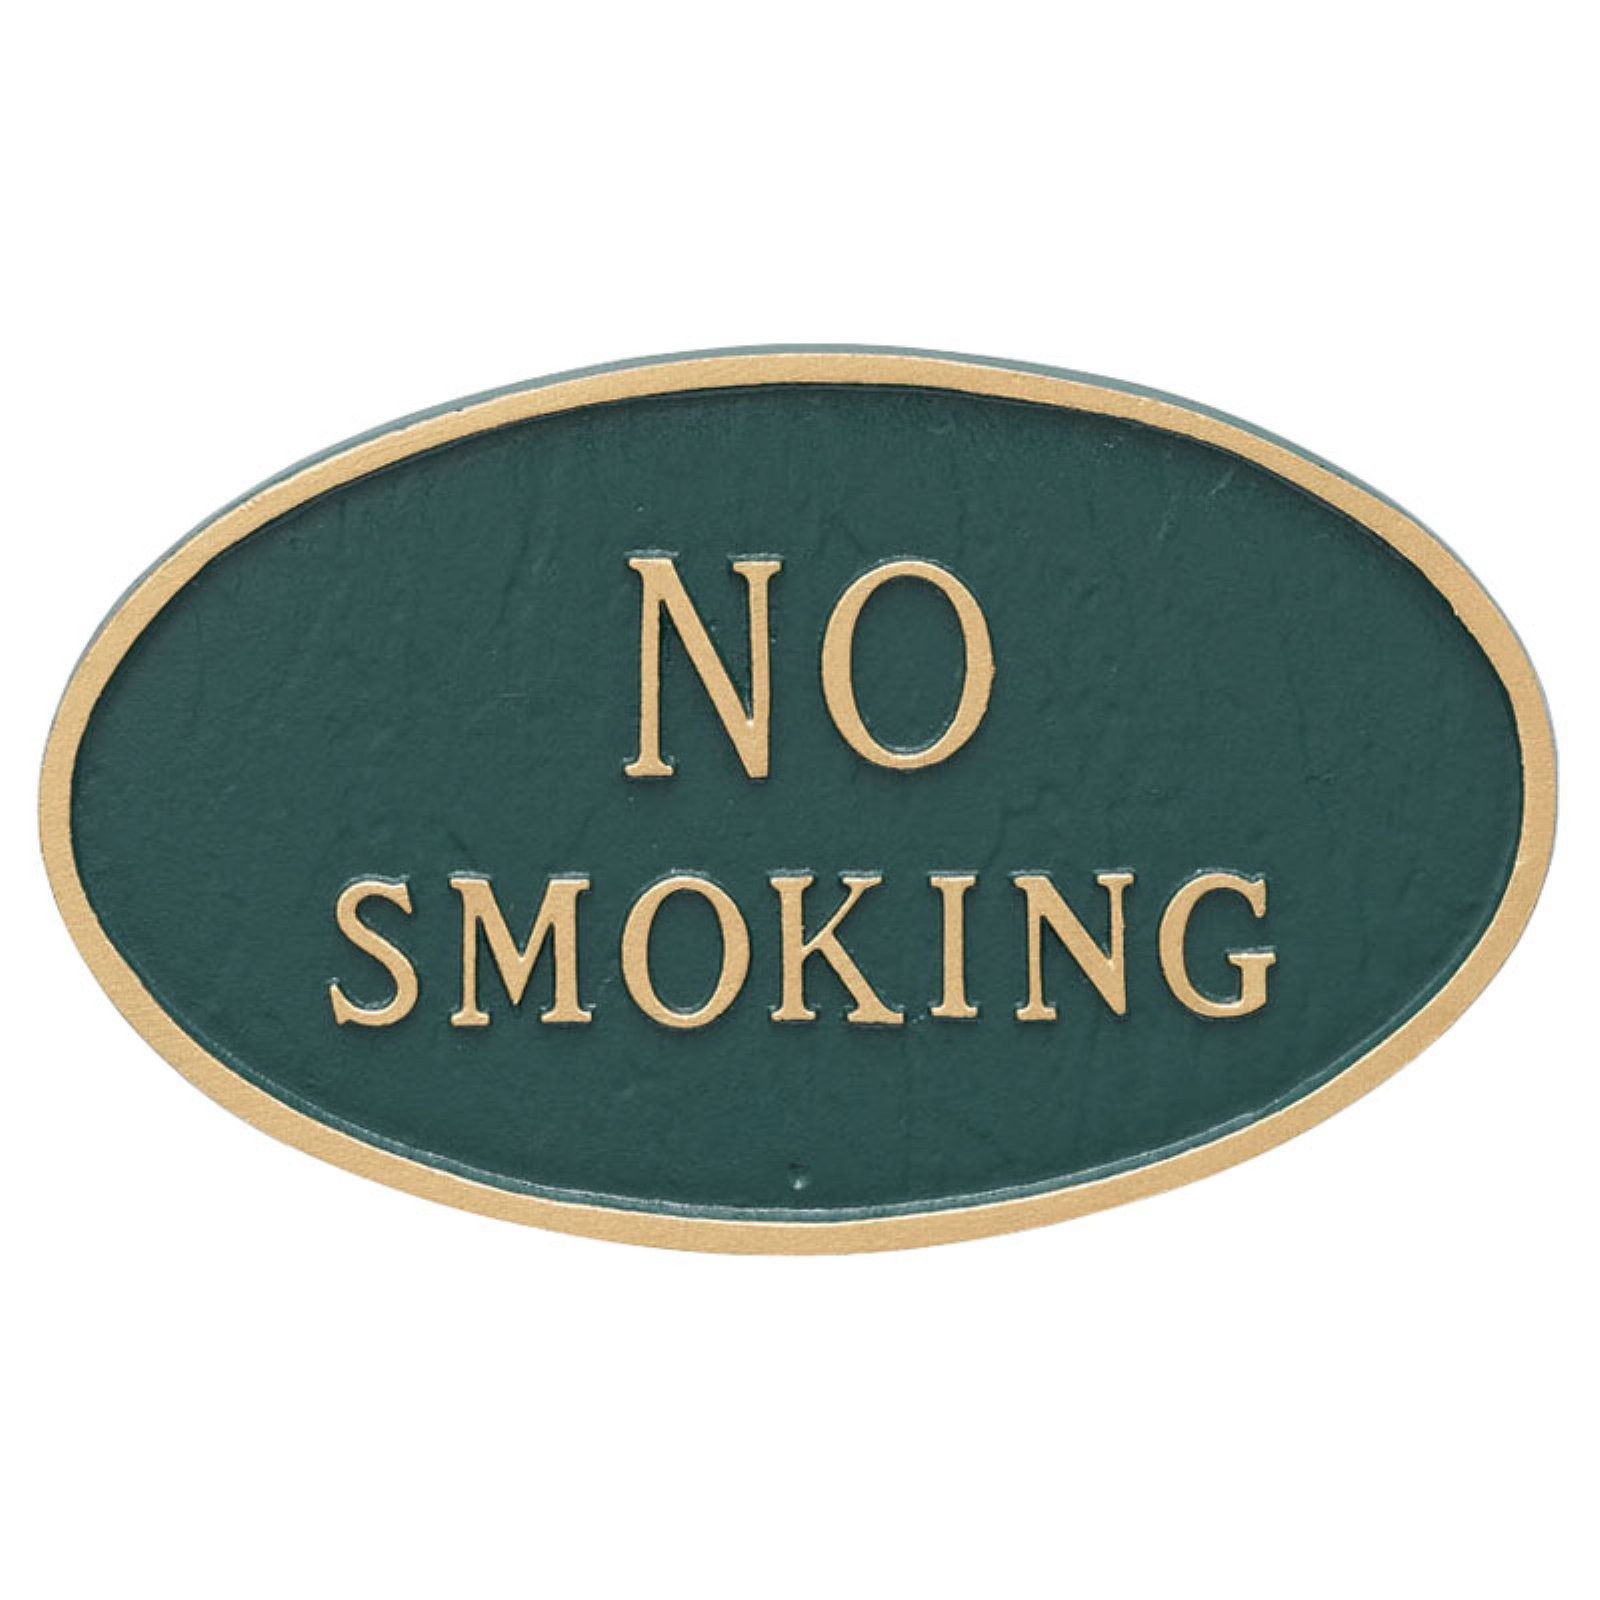 Montague Metal Products No Smoking Oval Wall Plaque